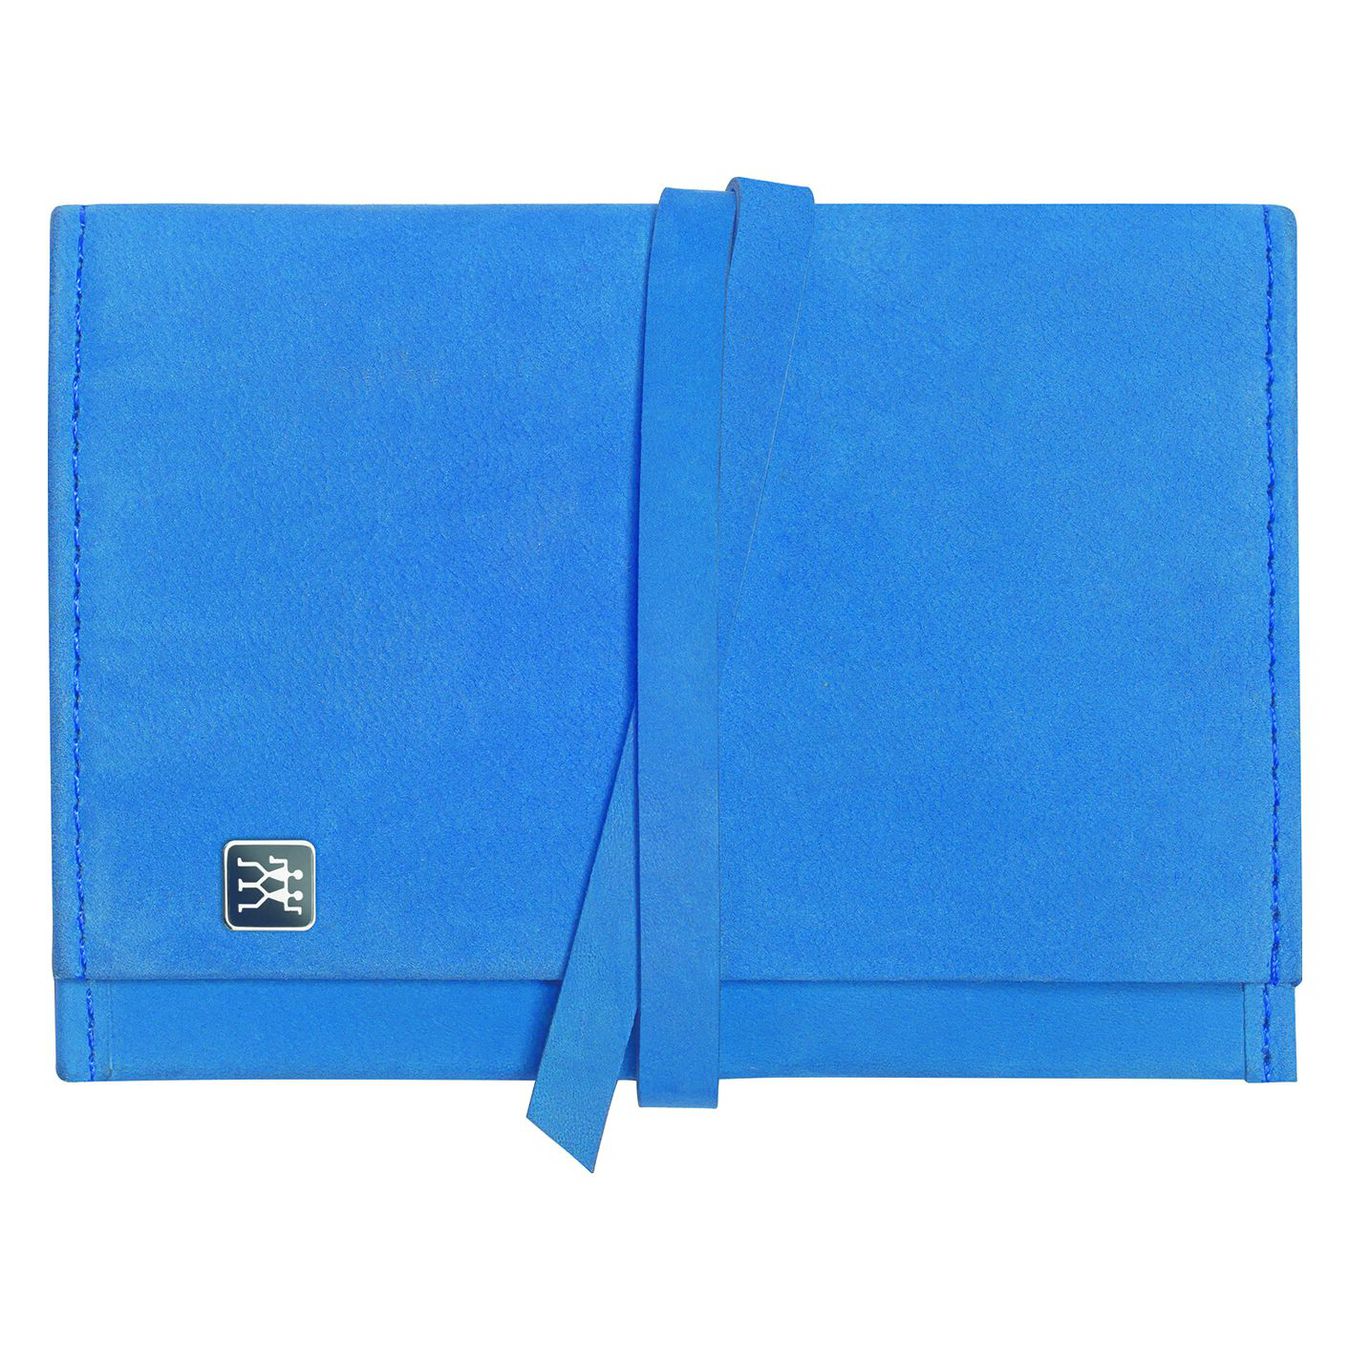 Pocket case, stainless steel   stainless steel   blue,,large 1